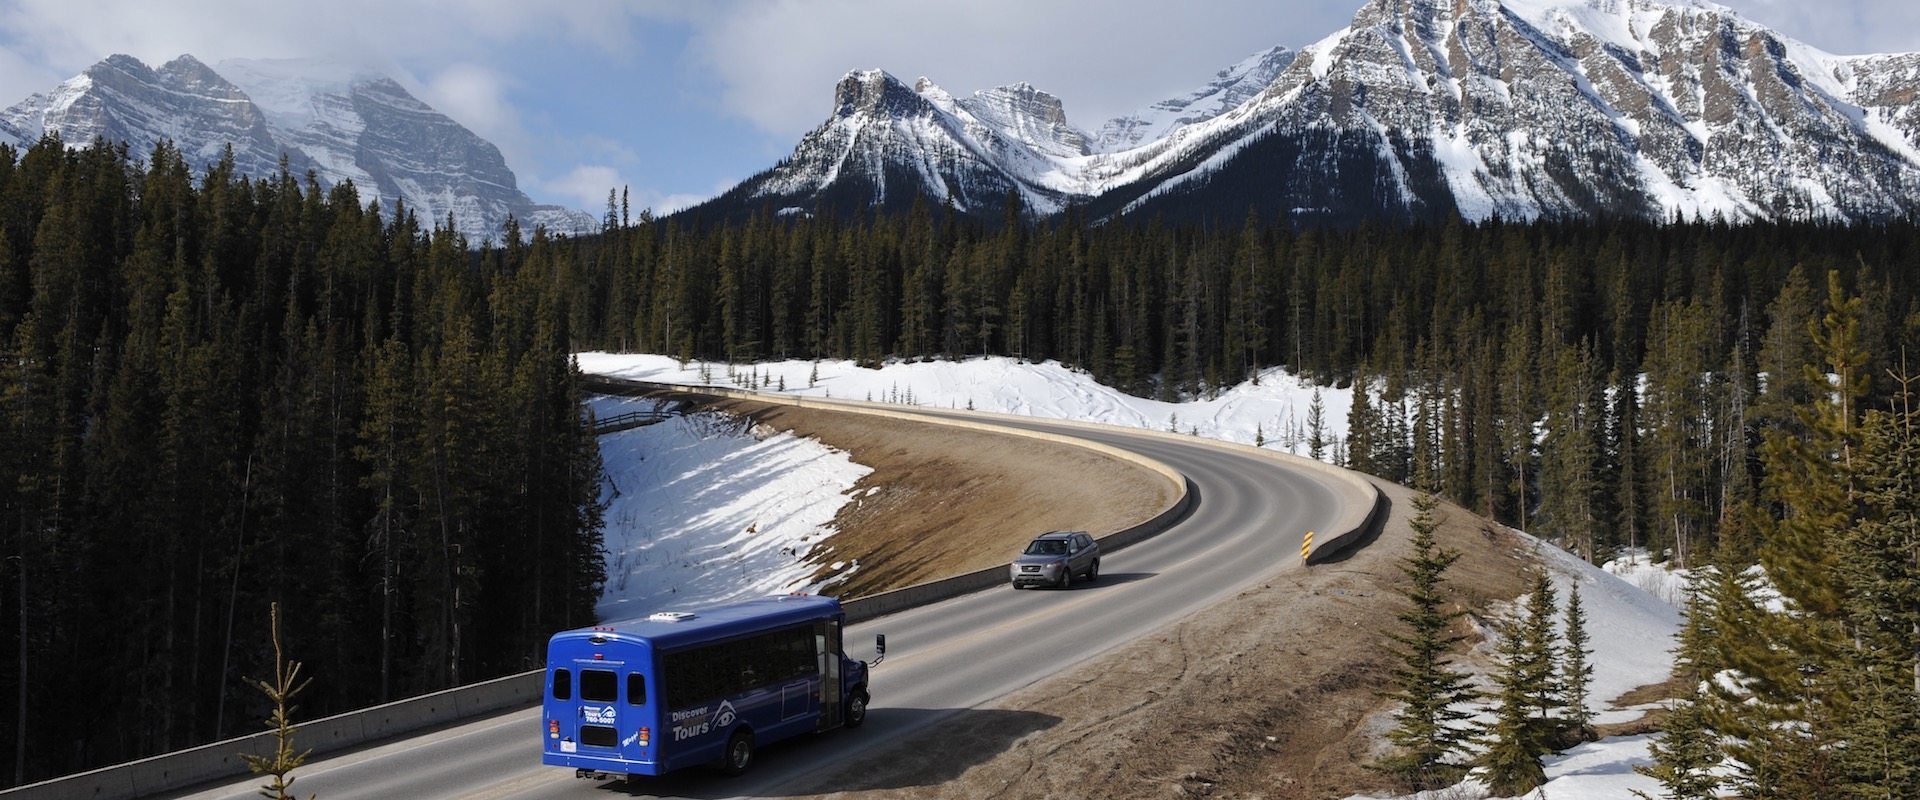 helicopter tour banff with Discover Lake Louise on 5 Day Yellowstone National Park West Grand Canyon Bus Tour Package as well D623 2528TOUR14 further Banff To Jasper moreover Winter Adventures Rockies Non Skiers also Canada Road Trip Ford Kamloops To Banff To Calgary.